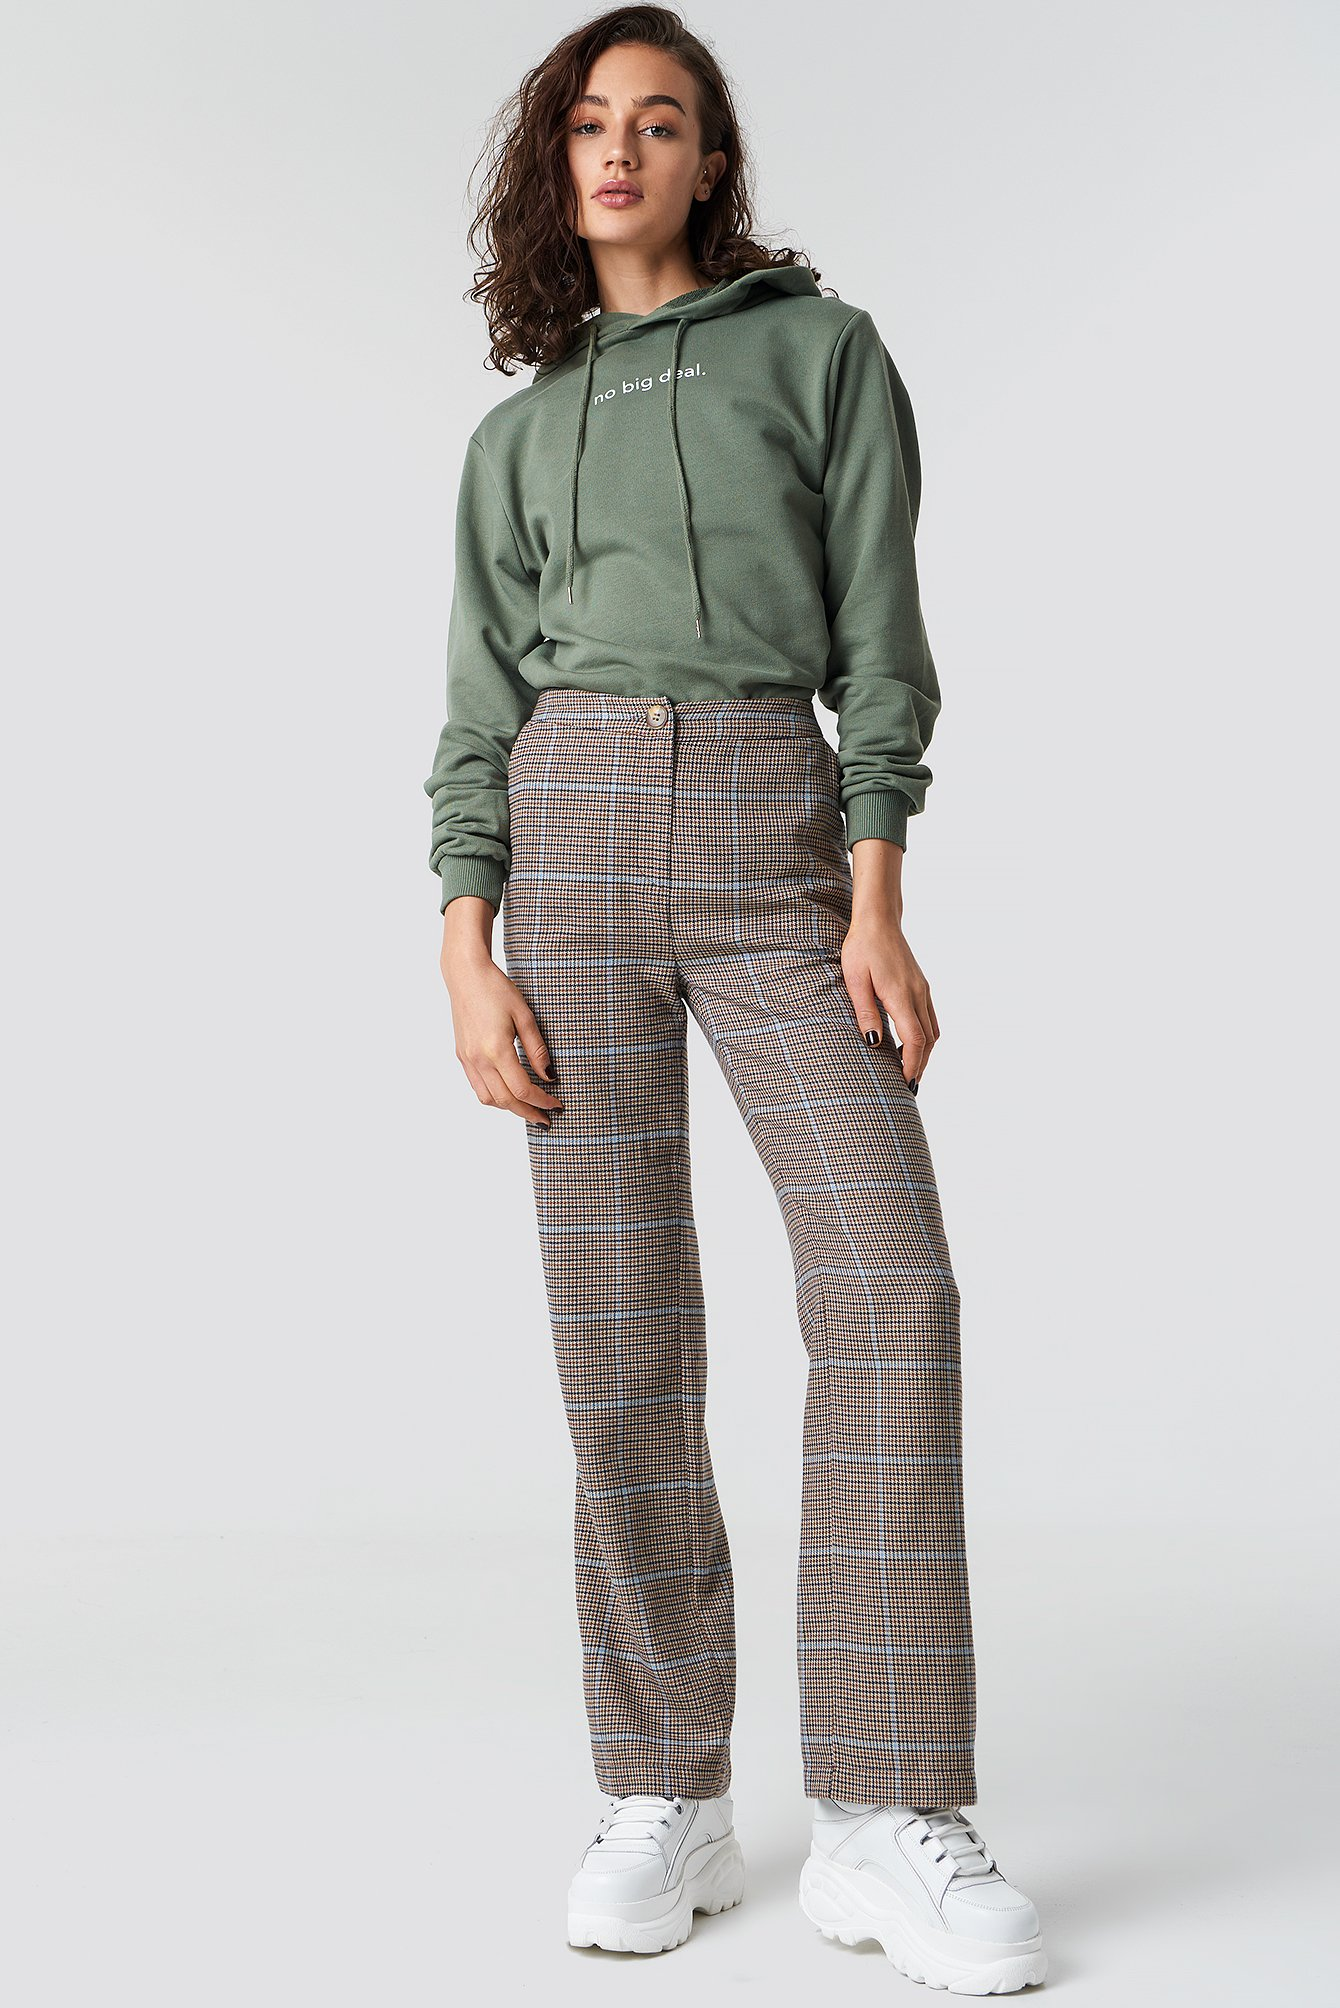 astrid olsen x na-kd -  Checked Suit Pants - Brown,Beige